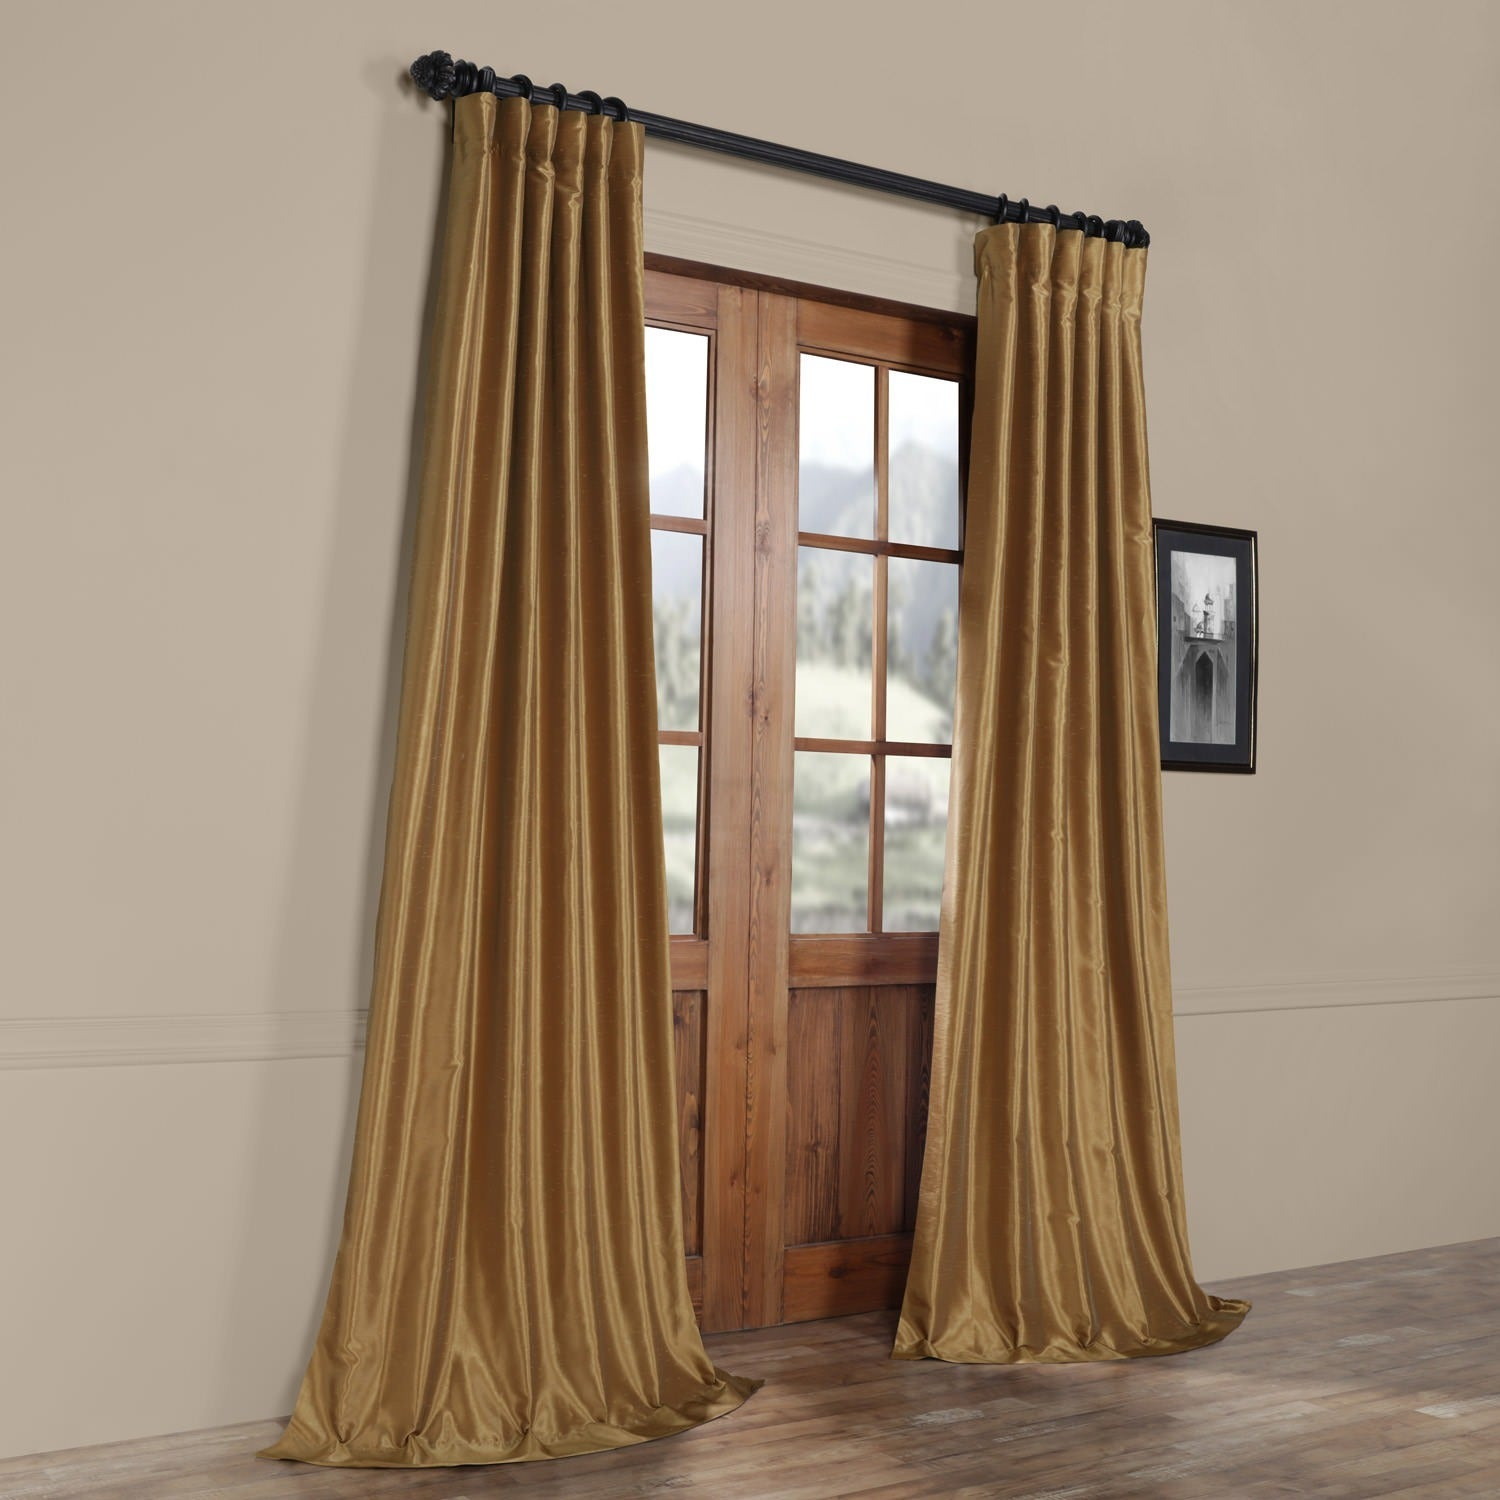 """Exclusive Fabrics Flax Gold Vintage Faux Textured Dupioni Silk Single Curtain Panel 108"""" (as Is Item) Intended For Vintage Faux Textured Dupioni Silk Curtain Panels (View 4 of 30)"""